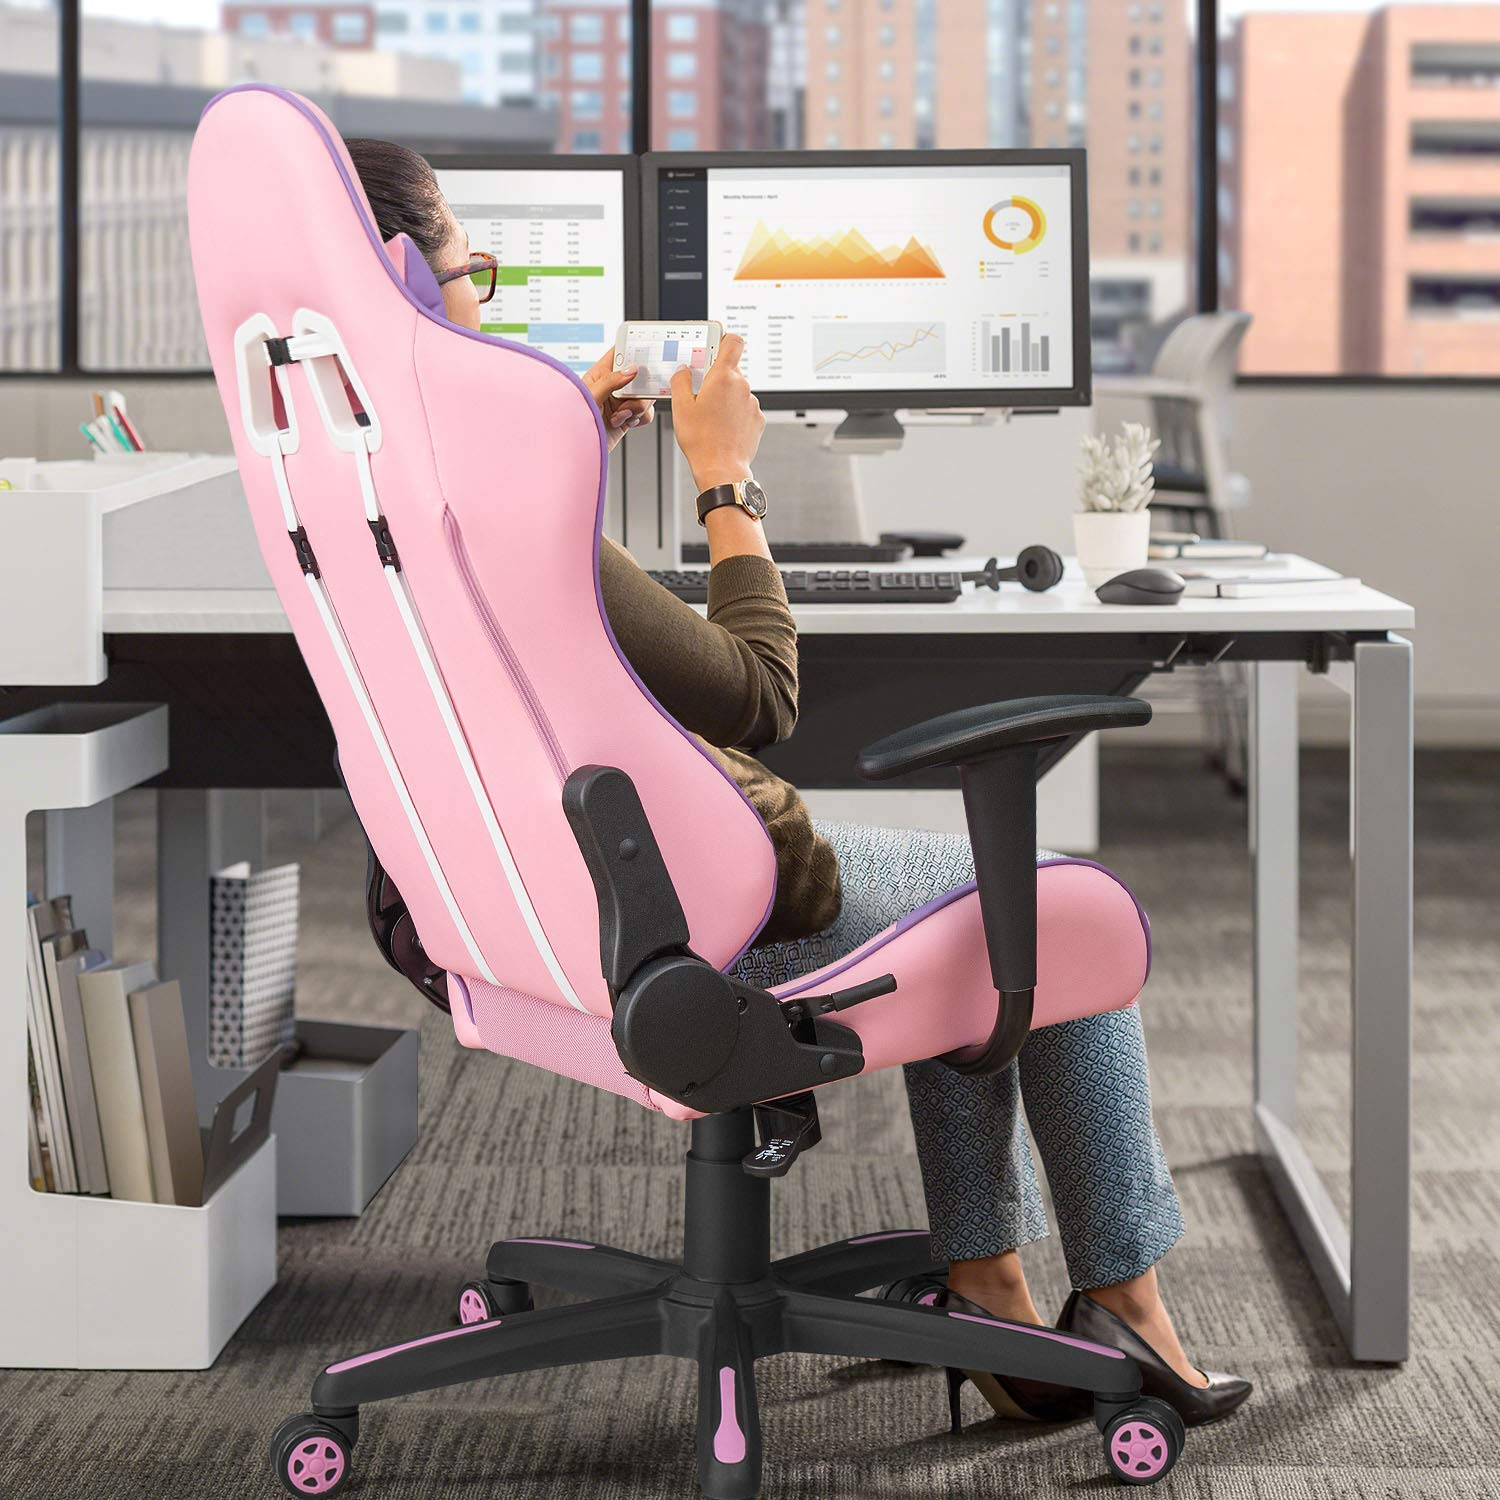 Leisure Sports Game Room Homall Gaming Chair Racing Office Chair High Back Computer Desk Chair Leather Executive Adjustable Swivel Chair With Headrest And Lumbar Support Pink Sports Outdoors Smkbinaputracihampelas Sch Id